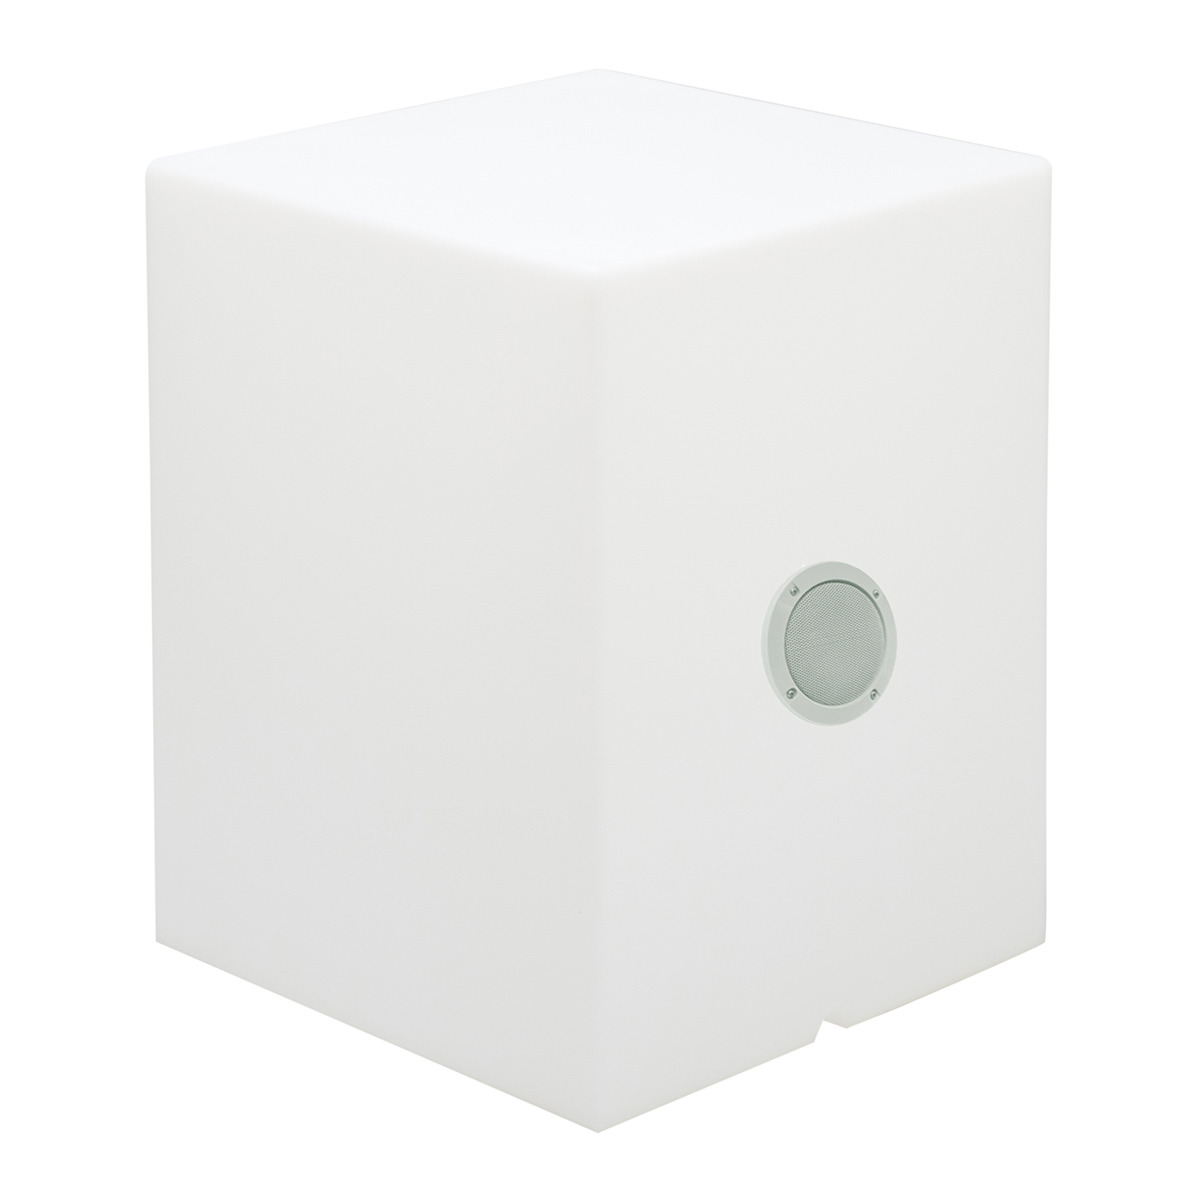 Cuby 55 cube iluminado Outdoor play baterí­a recargable LED RGB 43x43x53cm